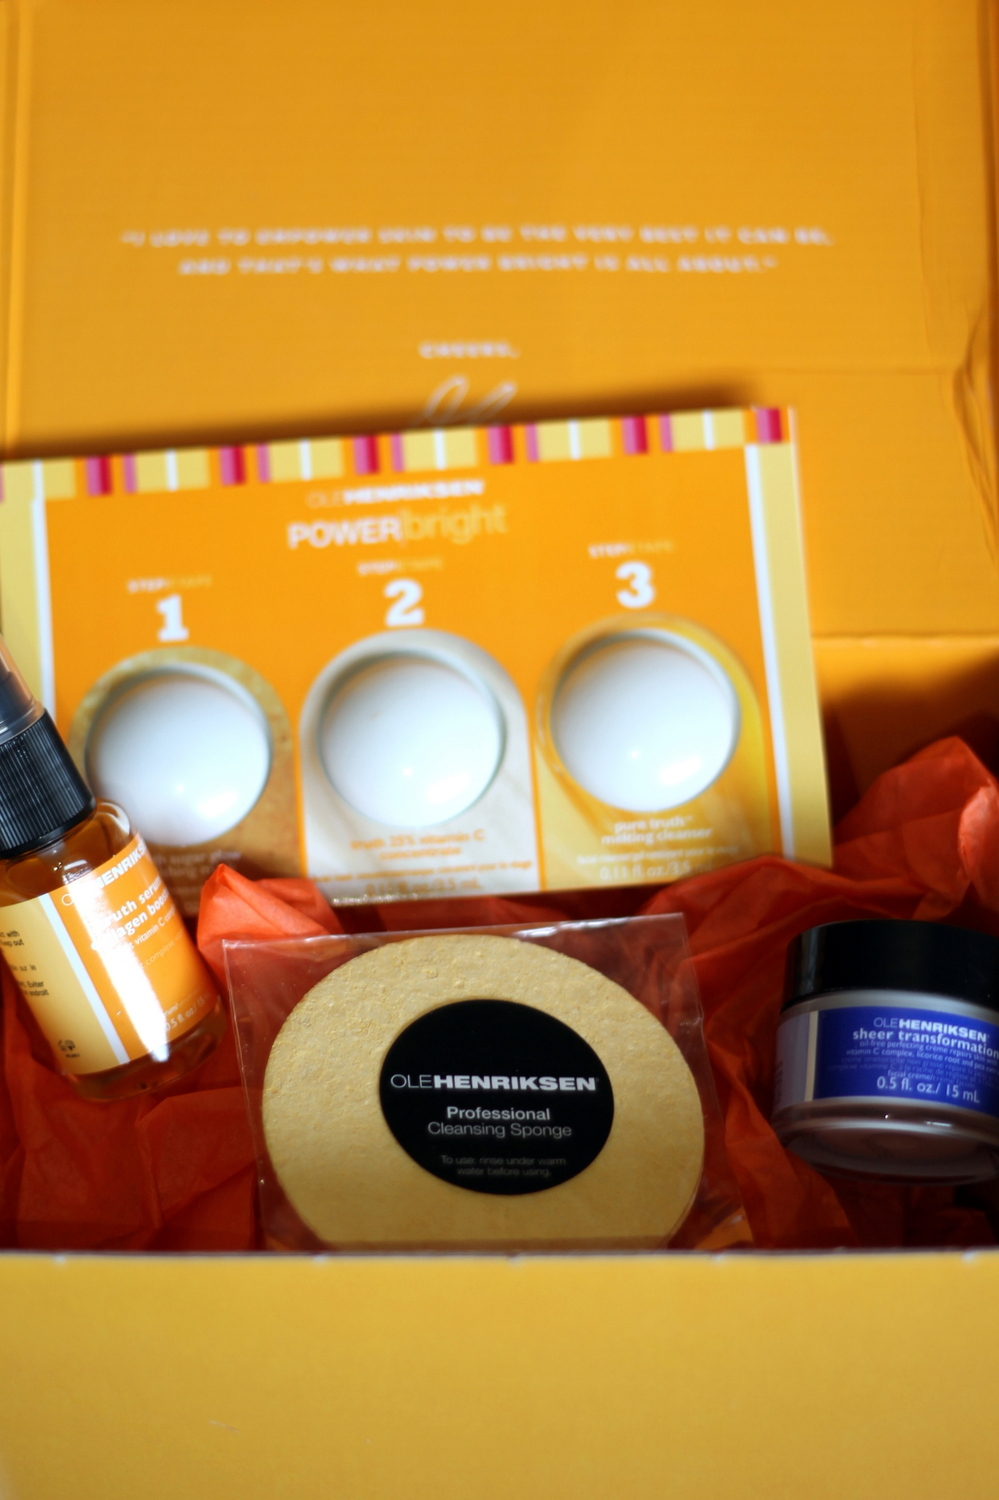 Ole Henriksen Power Bright Review | Re-Mix-Her